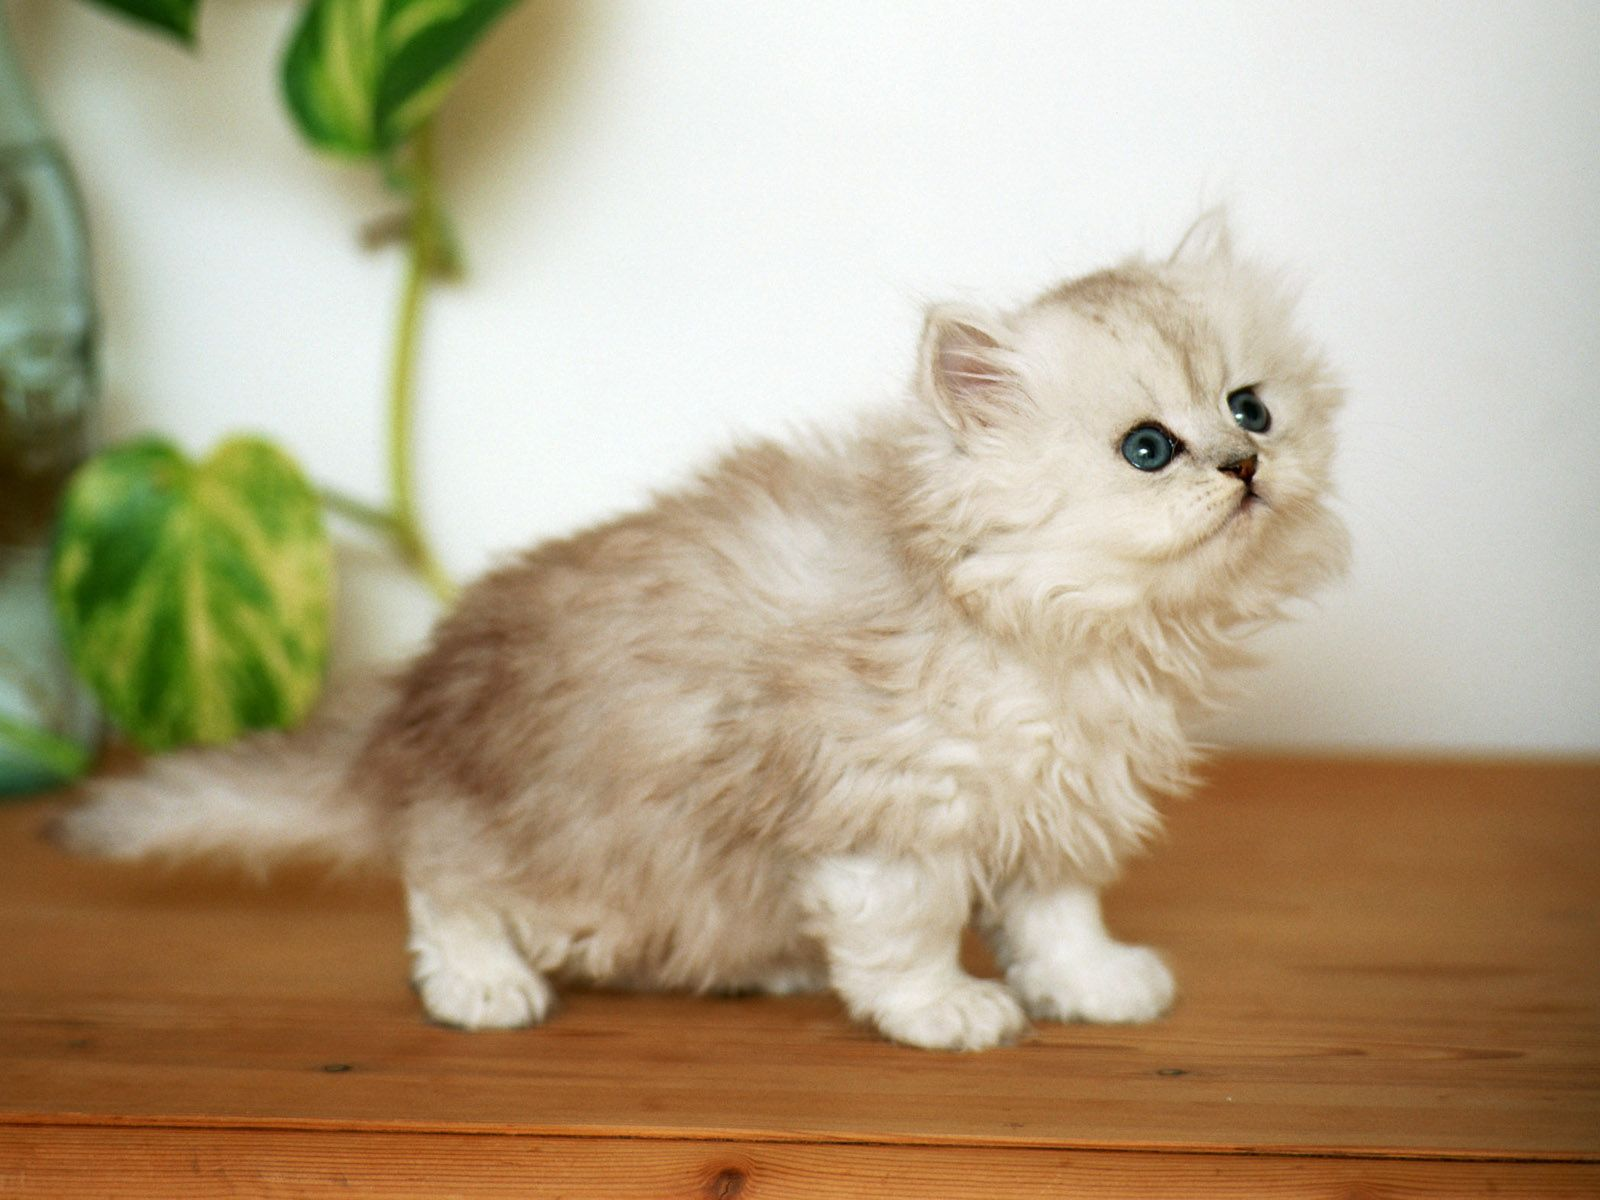 Cute White Fluffy Kitten wallpaper Cats Pinterest